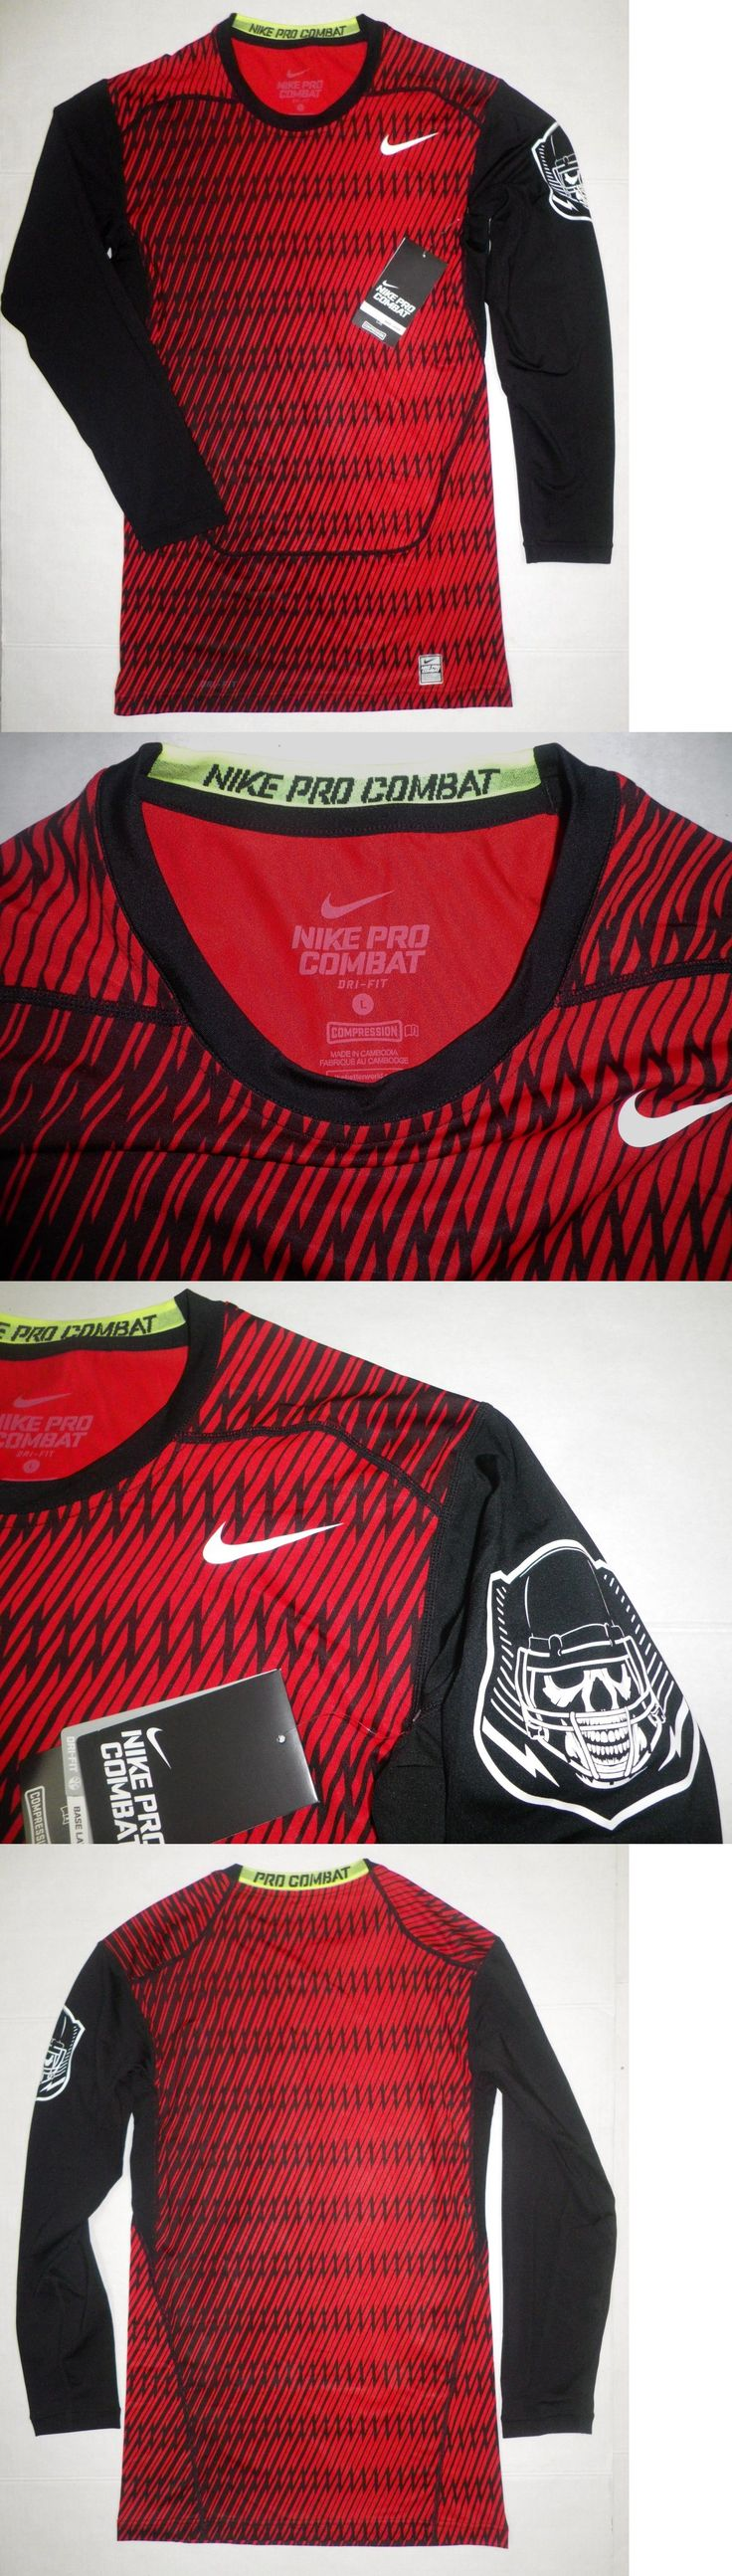 Compression and Base Layers 179825: Nwt Nike Pro Combat Long Sleeve Competition Base Layer Shirt Top Blk Red Mens L -> BUY IT NOW ONLY: $33.99 on eBay!